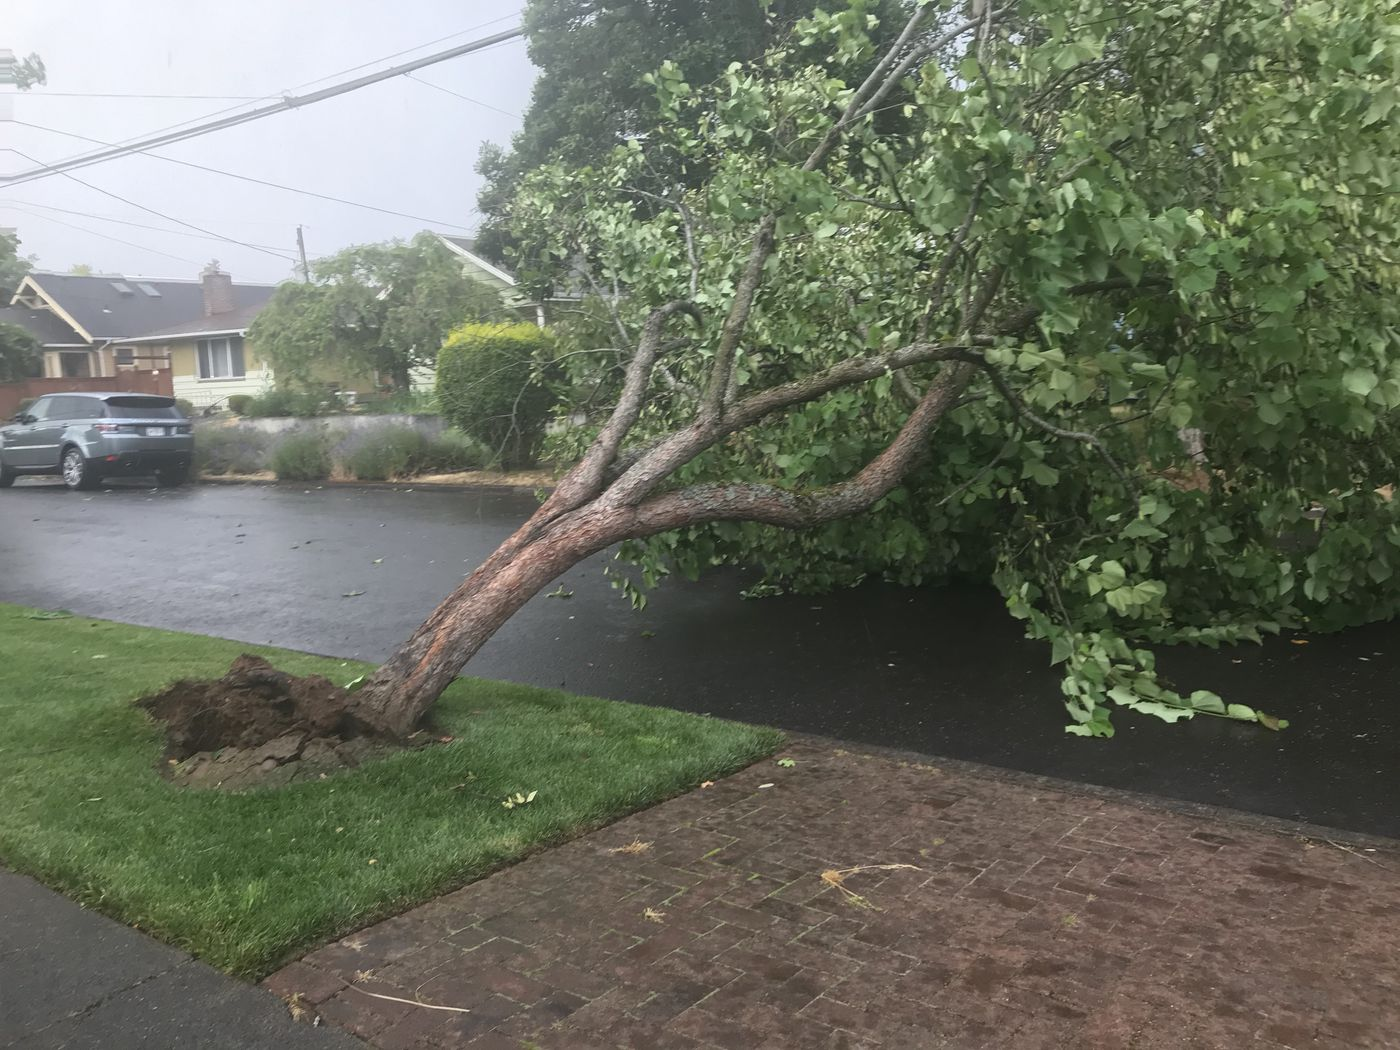 Tornado Touched Down In North Portland, NWS Confirms